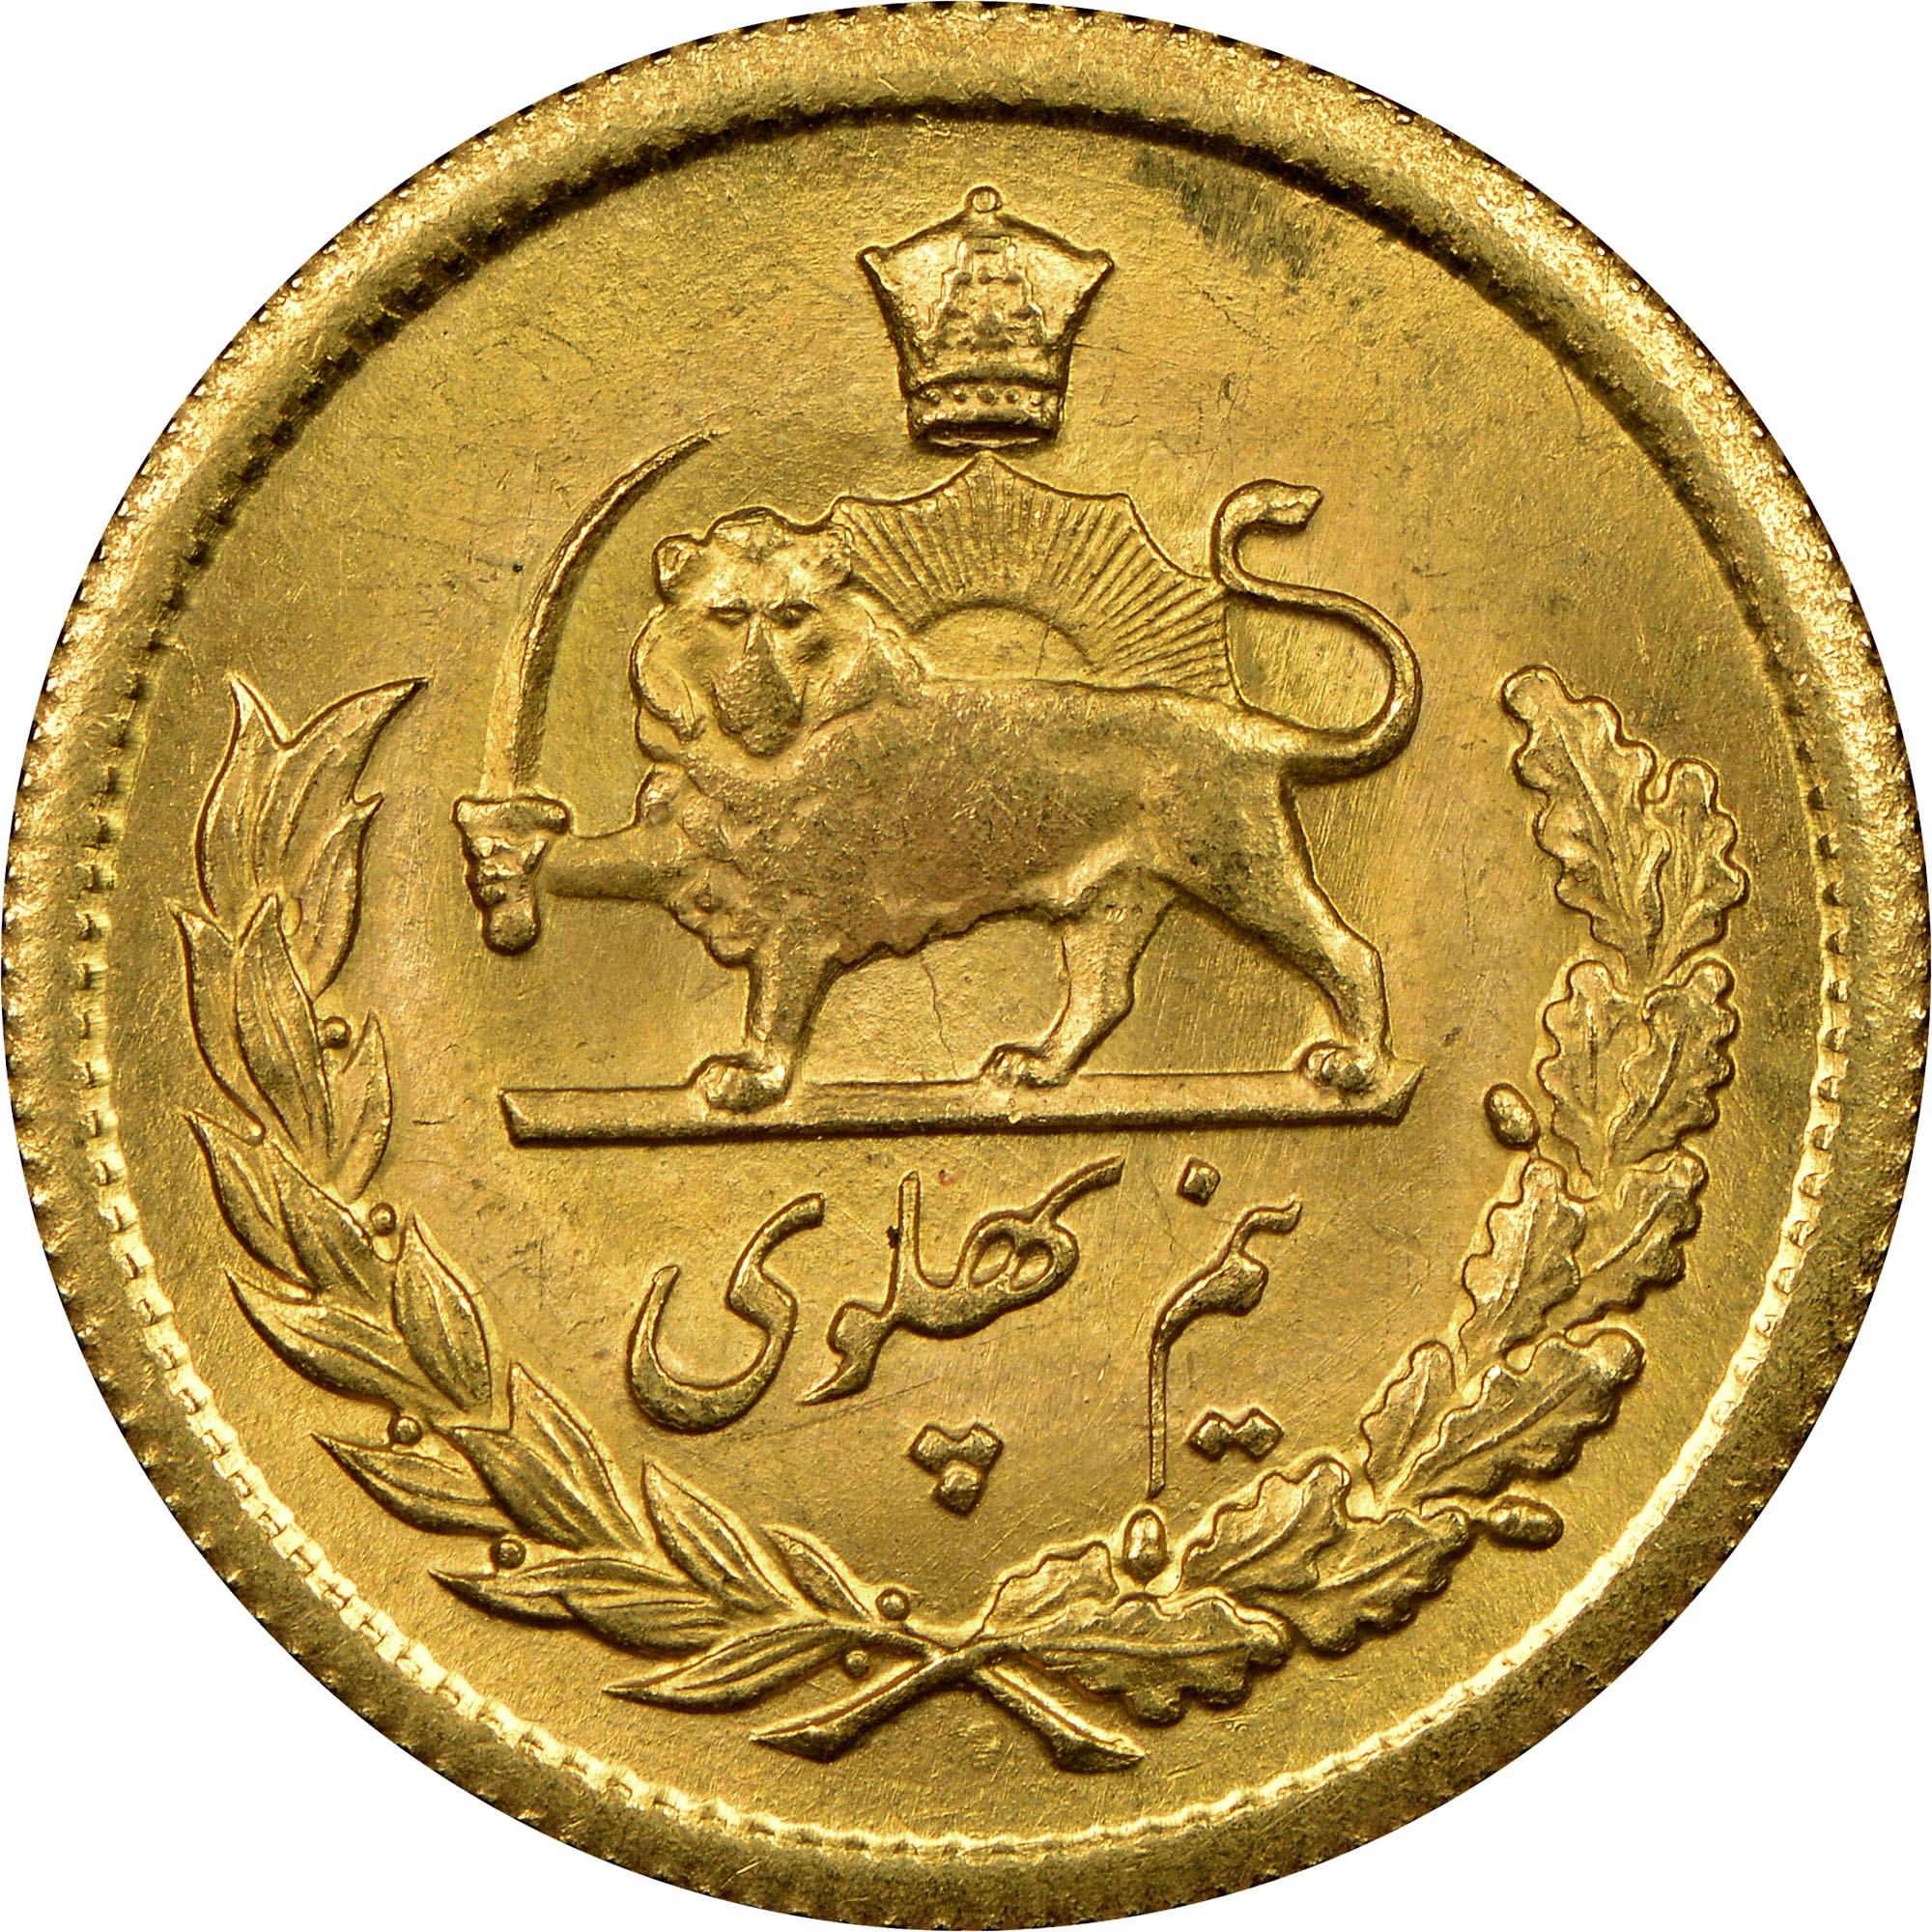 iran coin with lion holding sword